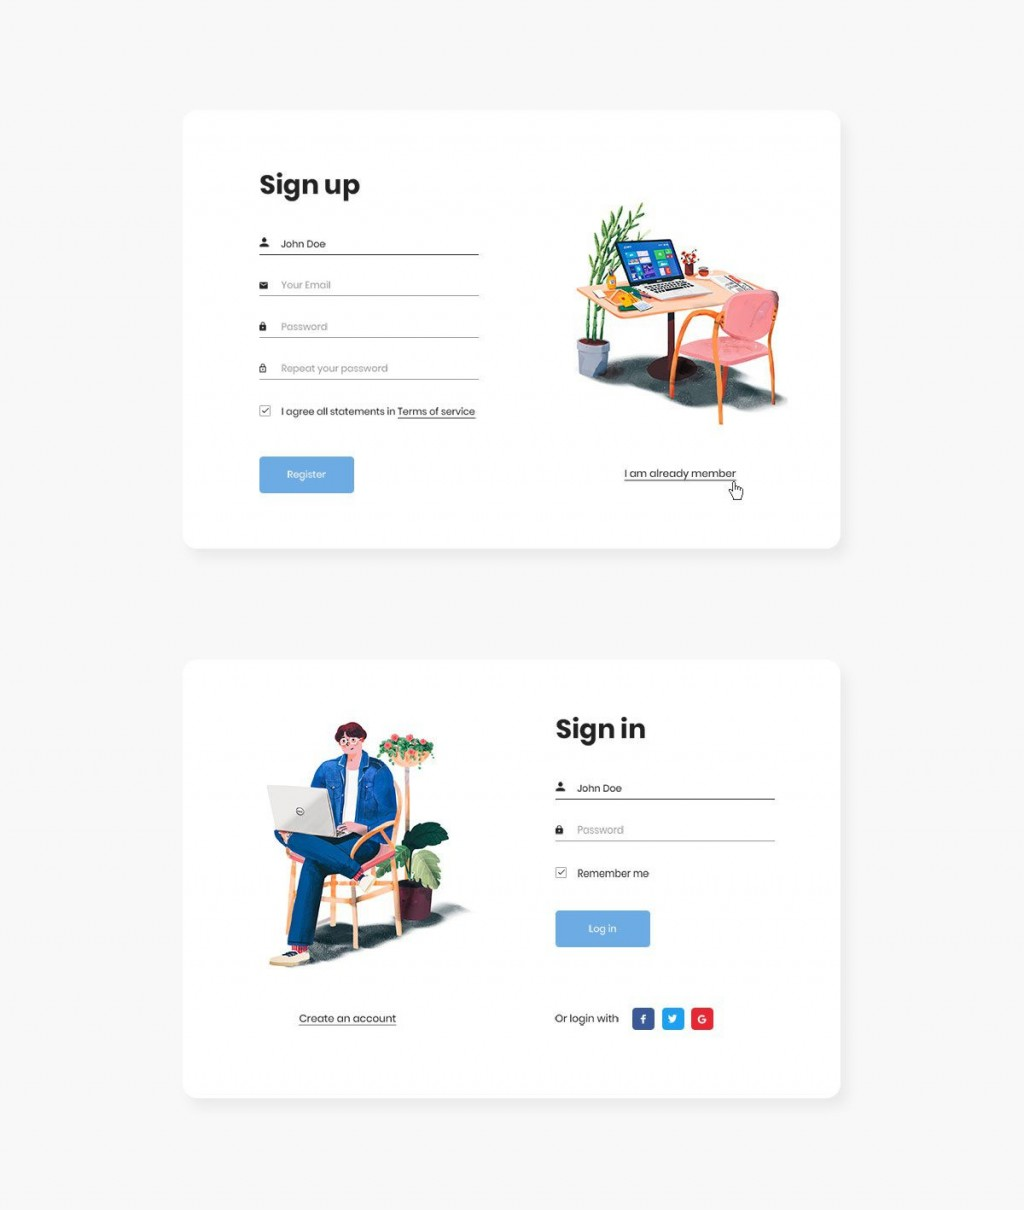 007 Fascinating New User Setup Form Template Photo  Customer Word Account Vendor ExcelLarge